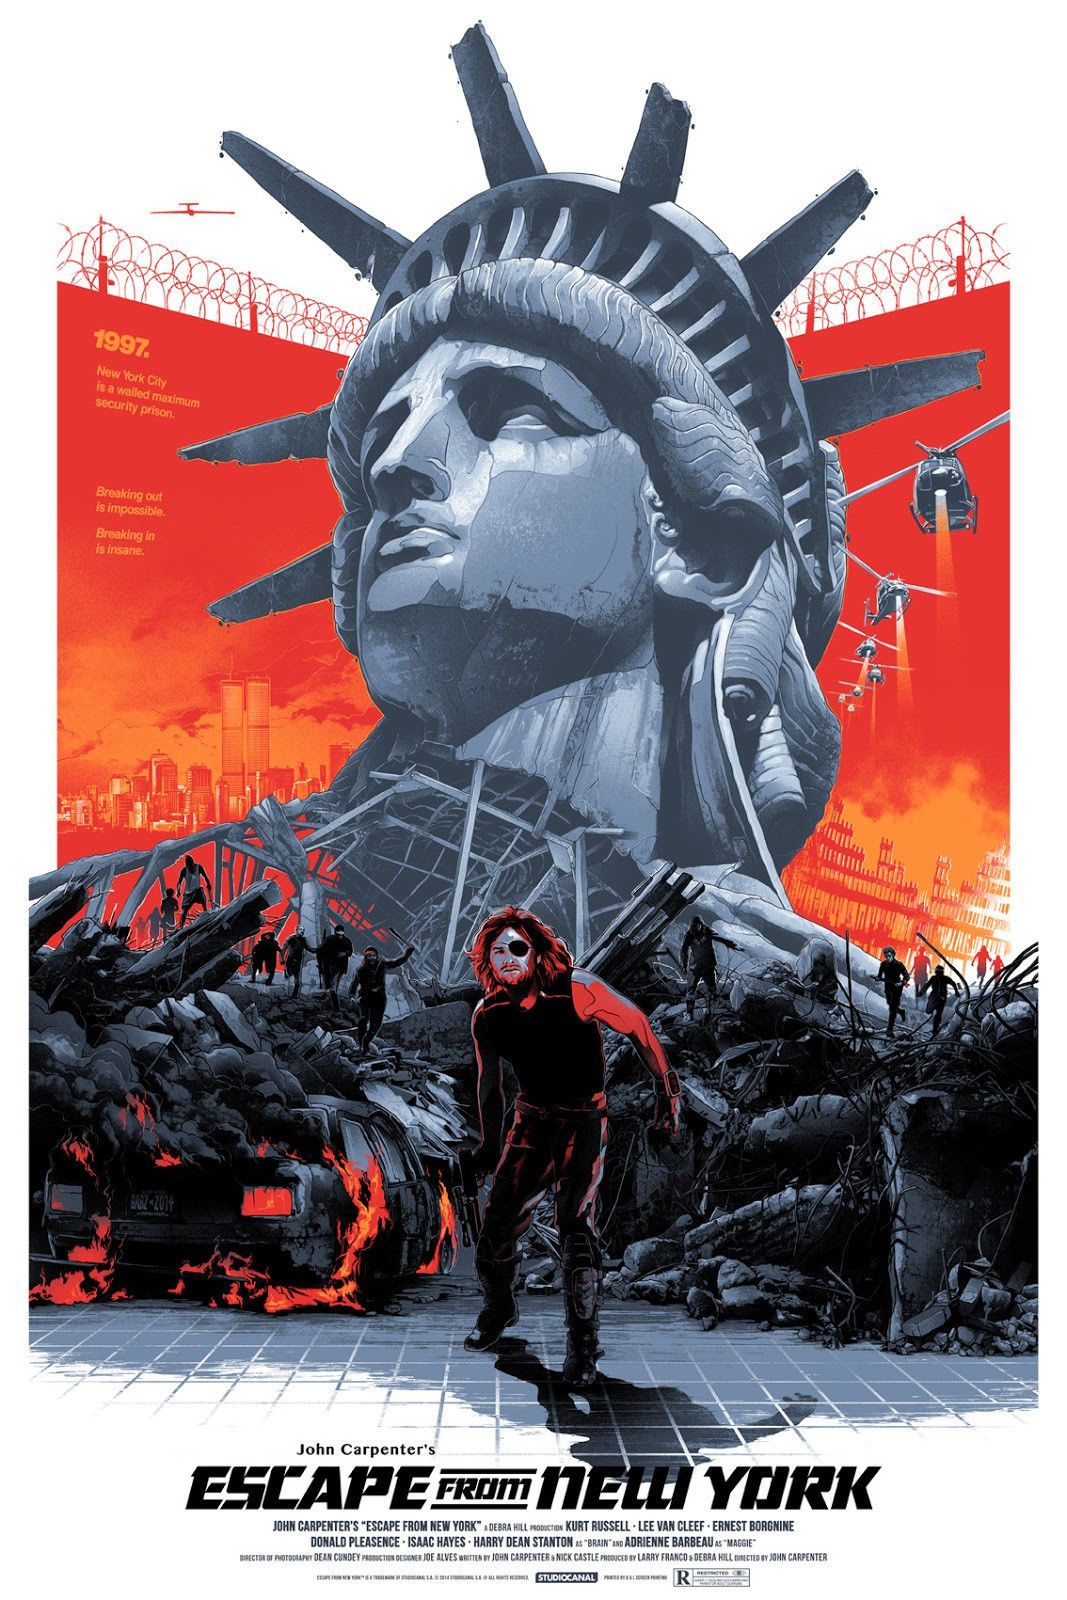 Escape from New York Domaradzki Gabz Regular Grey Matter not Mondo Posters | eBay